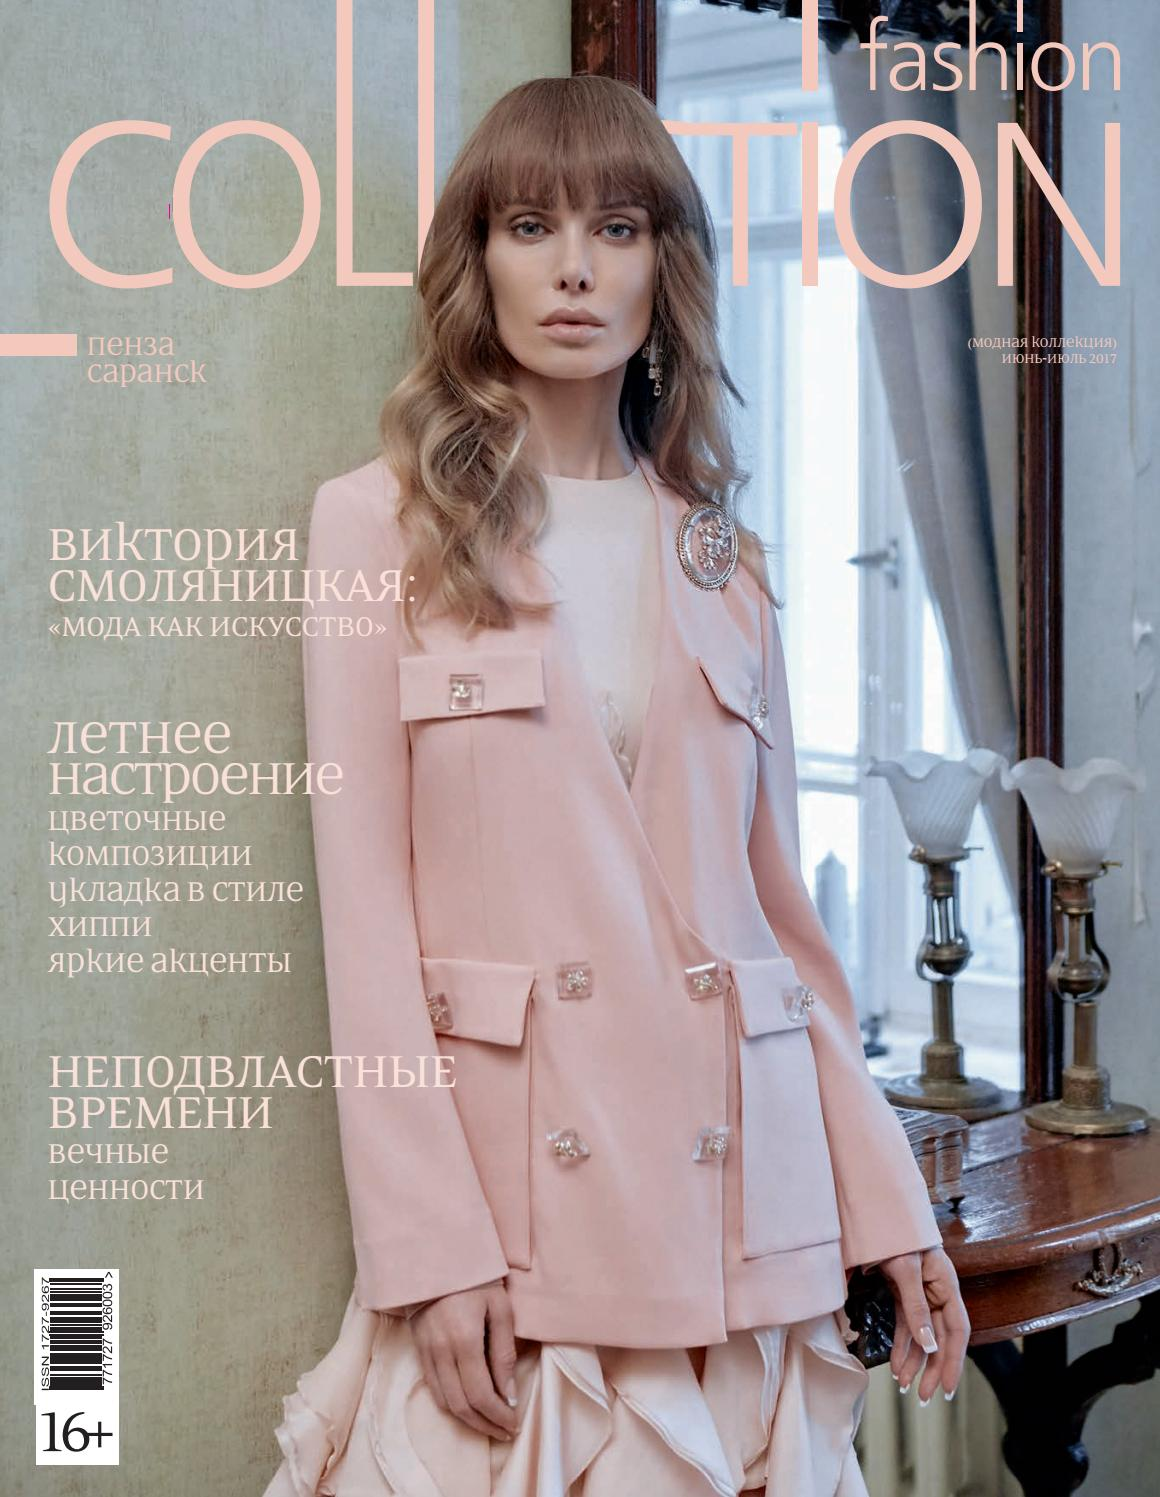 Fashion Collection Penza Juni  Juli 2017 by Fashion Collection Пенза - issuu 3dc052d8d23